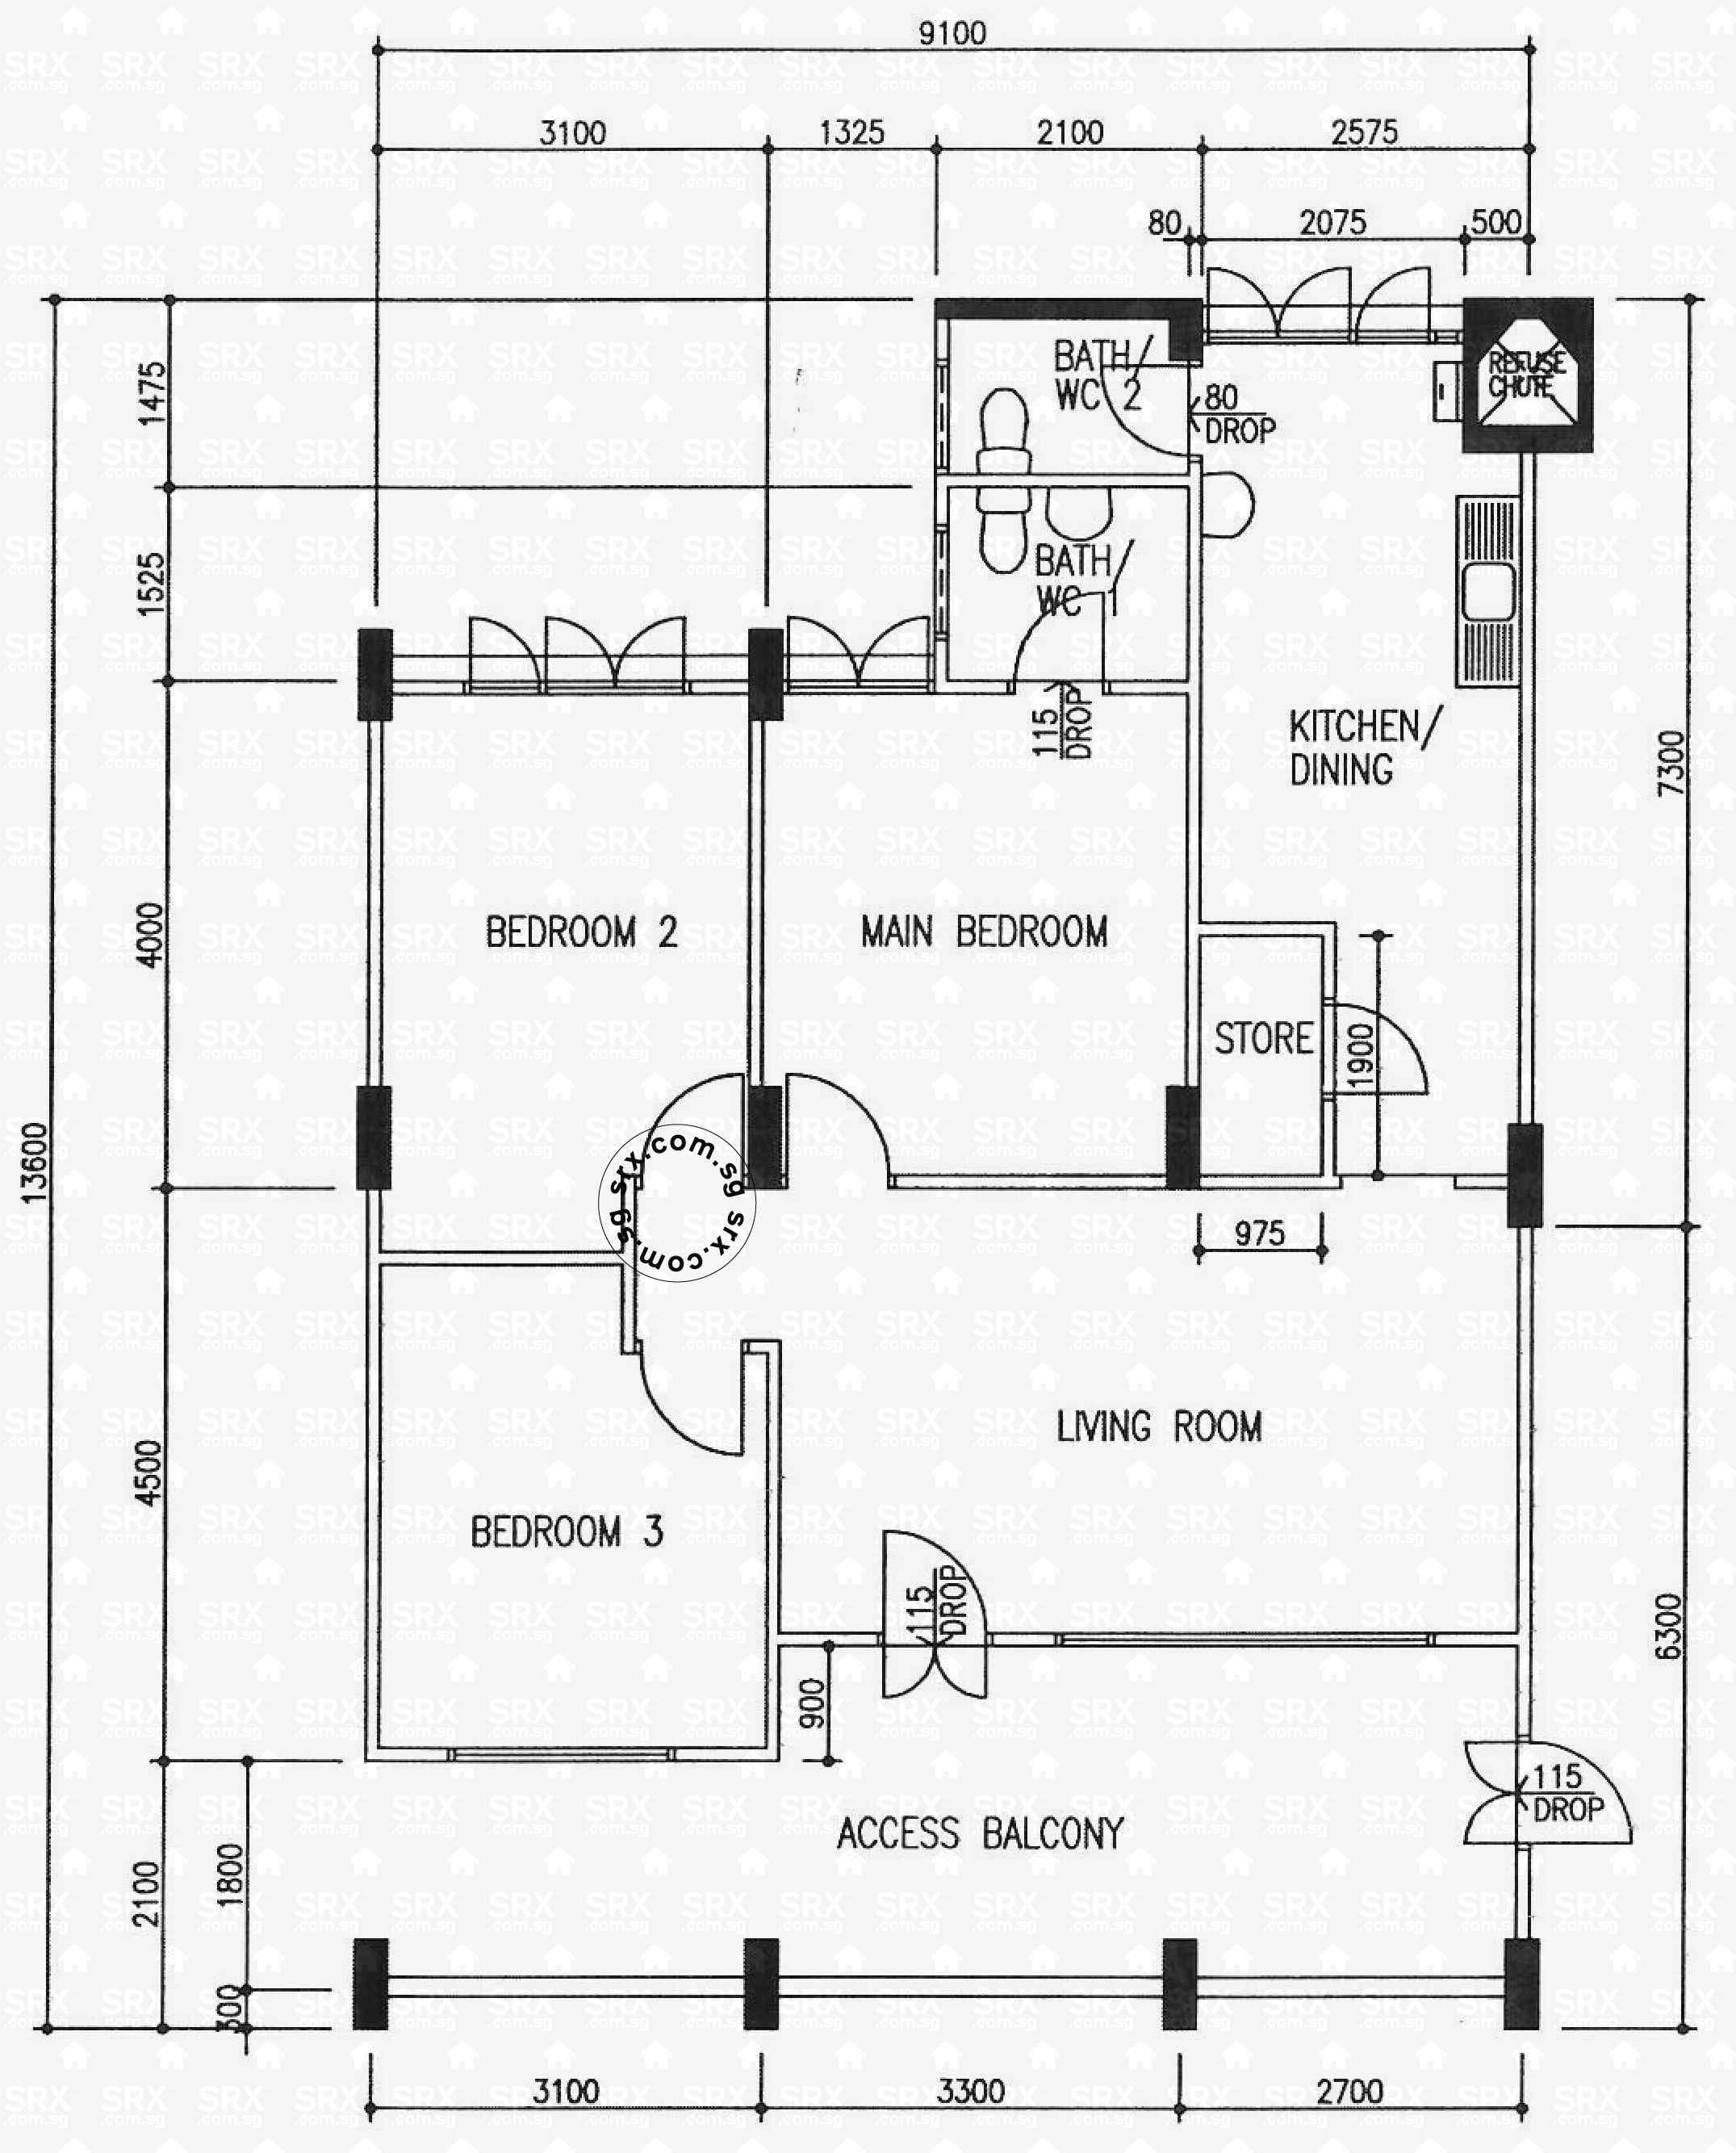 Guggenheim Bilbao also Hougang Street 91 Hshou0019 besides New Modern And Countrycottage House Plans moreover Small Three Bedroom House Plans additionally Designing Your Ada Restroom. on accessible floor plans